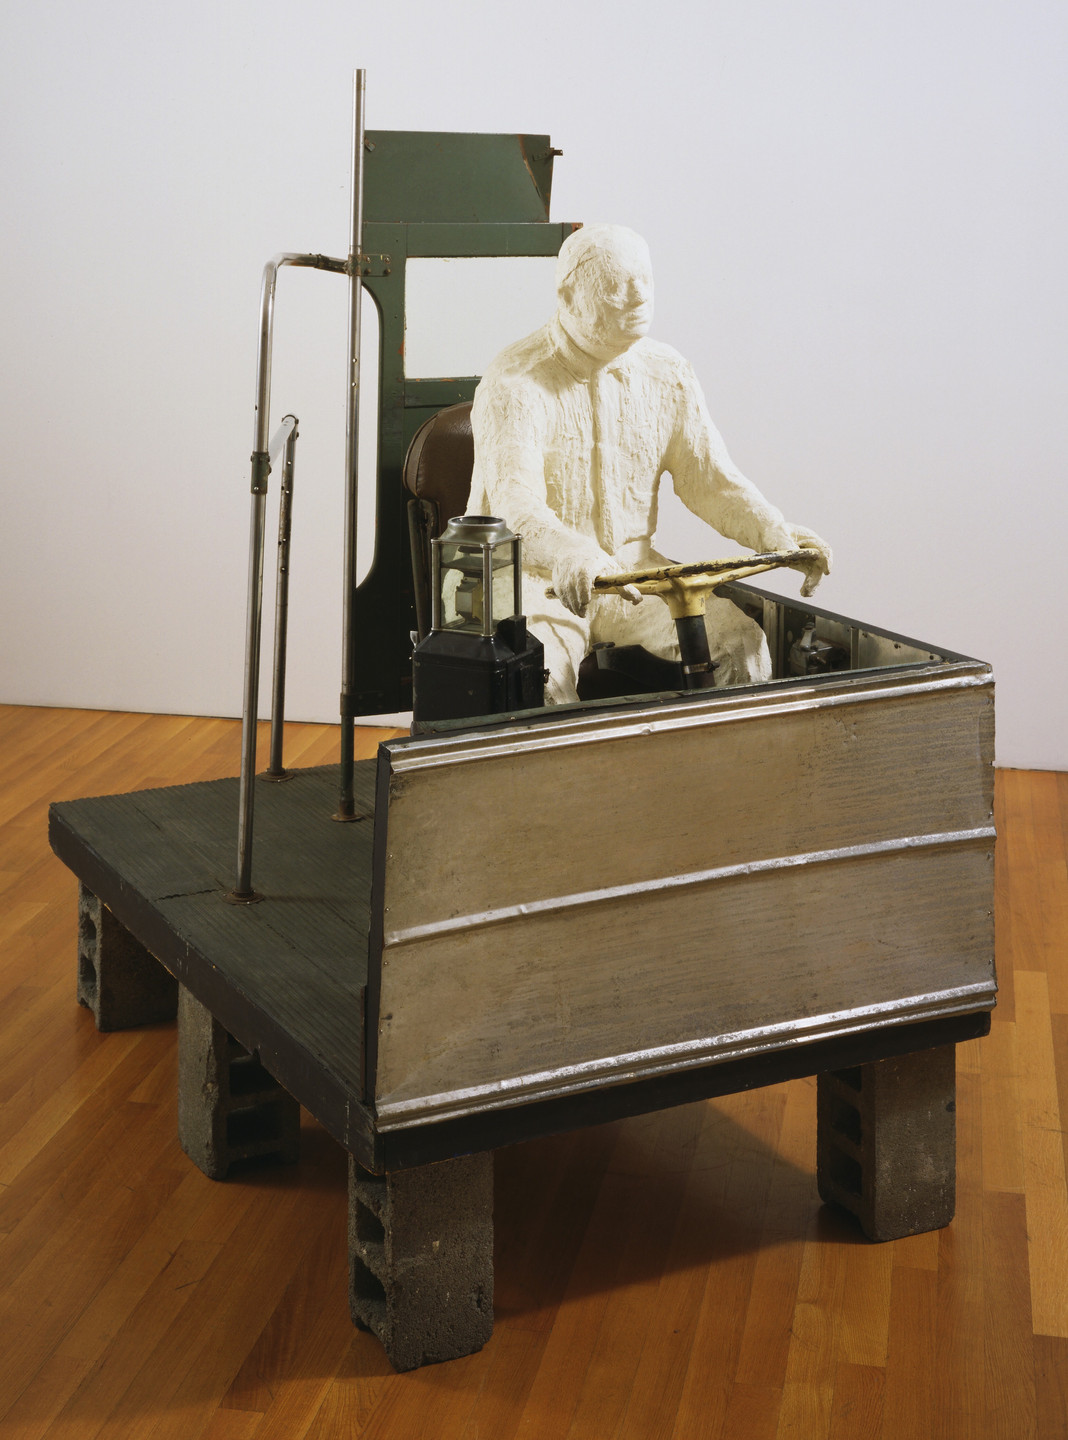 George Segal. The Bus Driver. 1962